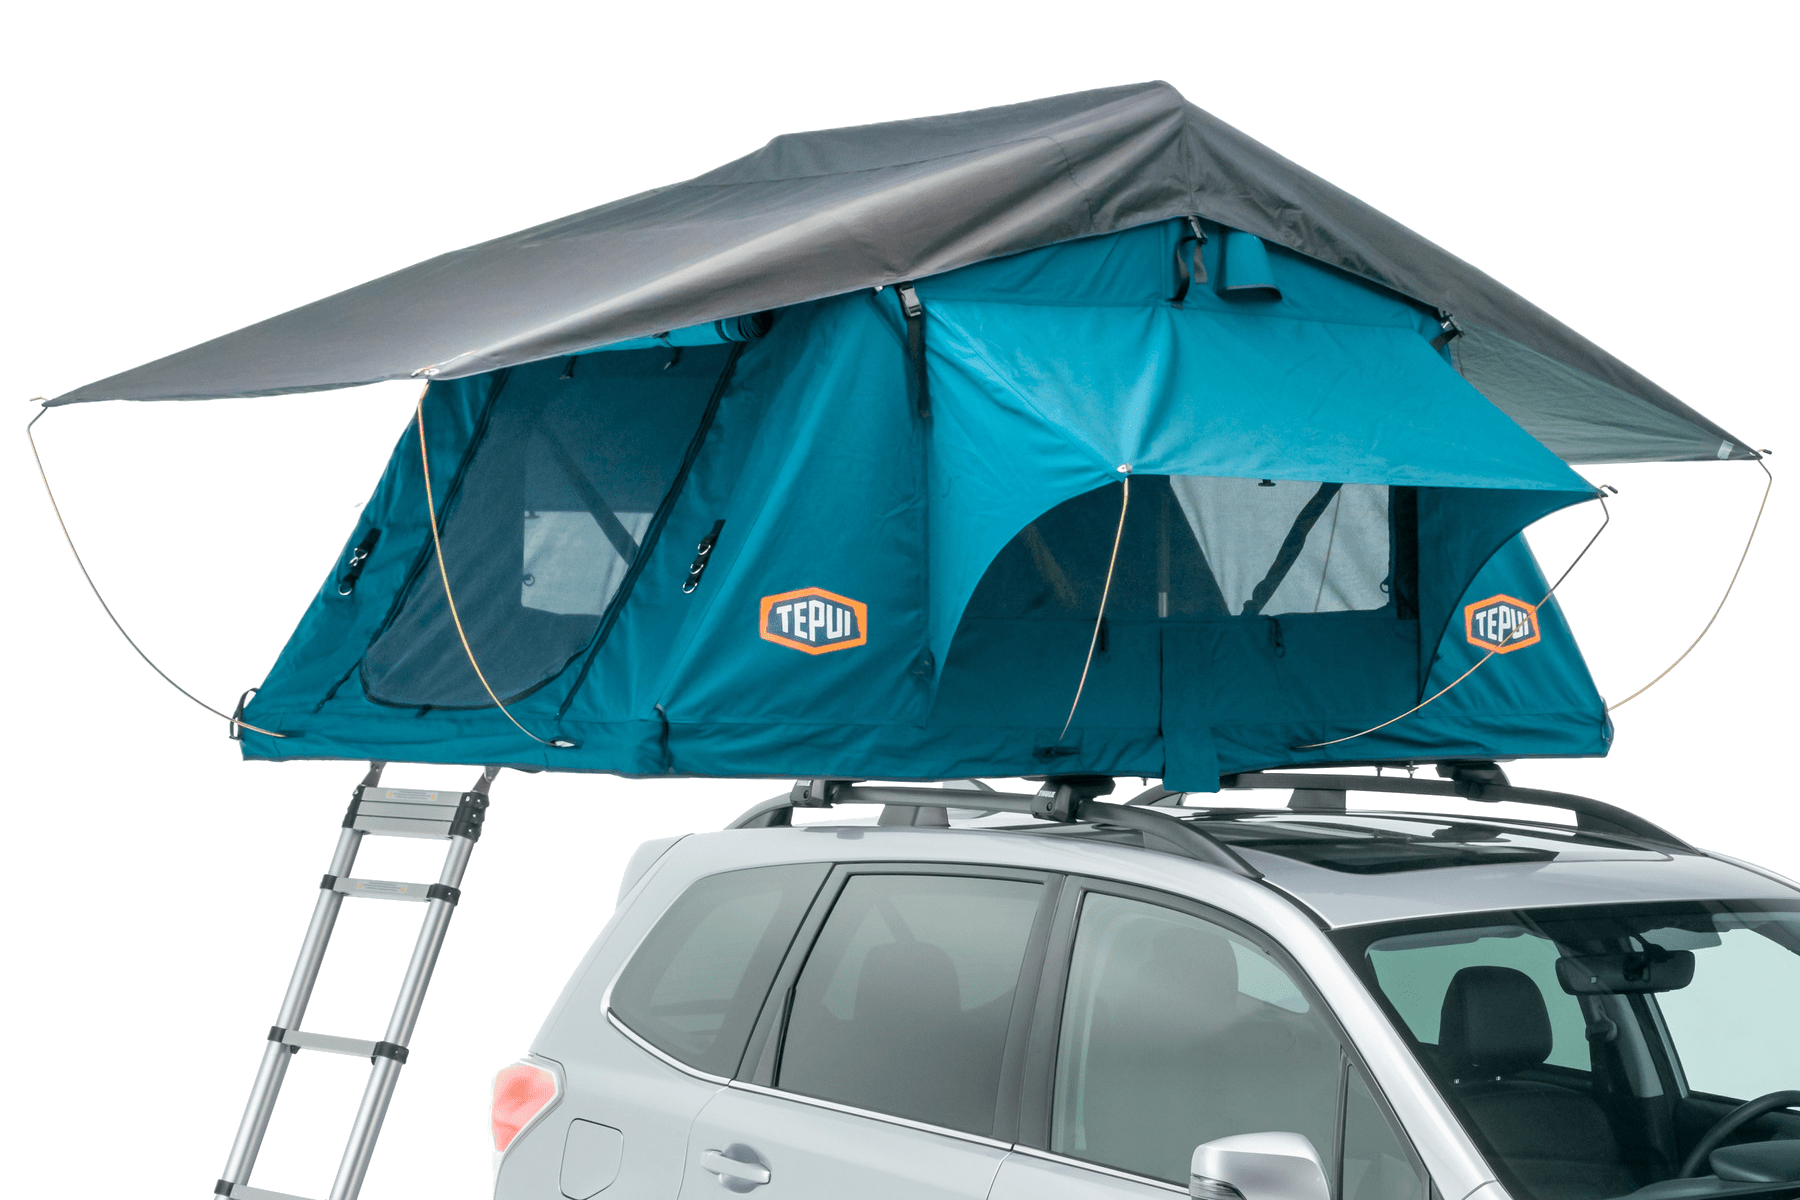 Tepui rooftop tent shown installed on a vehicle in grey.